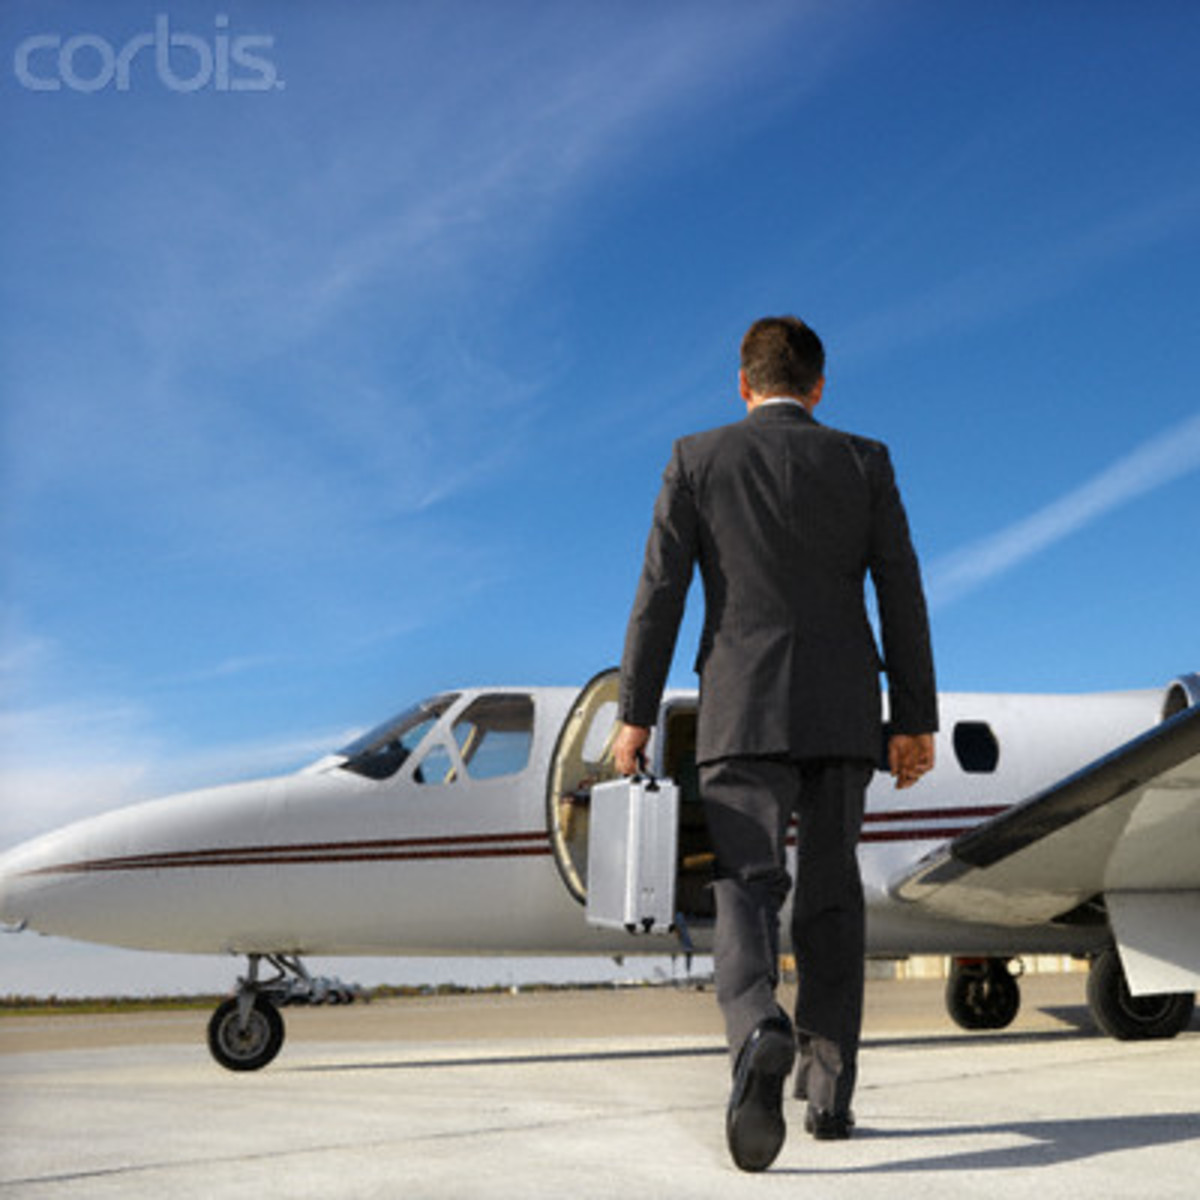 PRIVATE AIRCRAFT BOARDING PROCEDURE